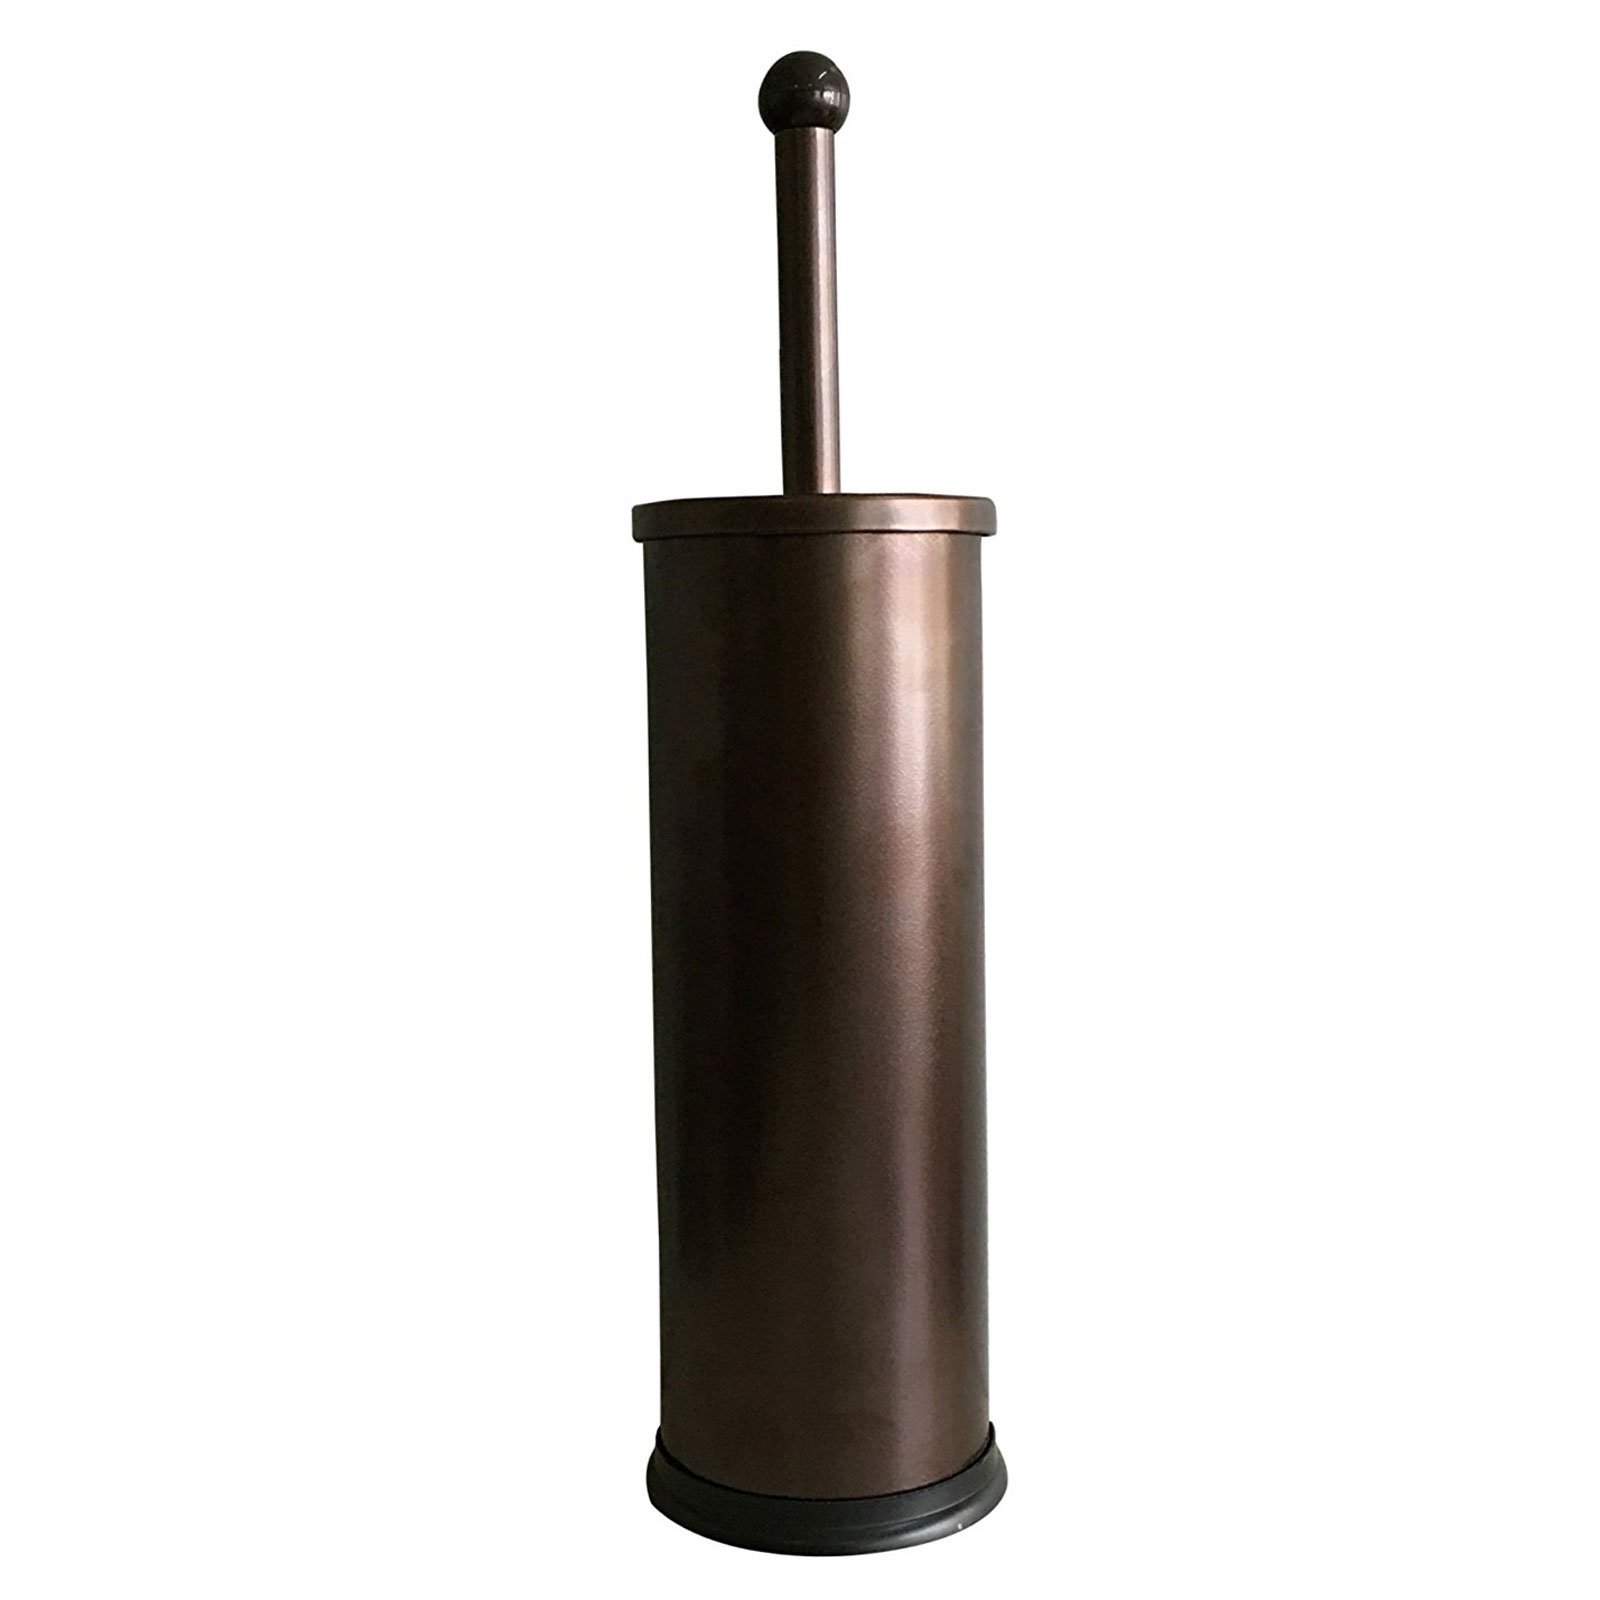 HUJI Rust Resistant Bronze Toilet Brush Holder with Lid Perfect Bathroom Bowl Cleaning Set Gift for House Warming or College Dorms Accessories (1, Bronze Toilet Brush)